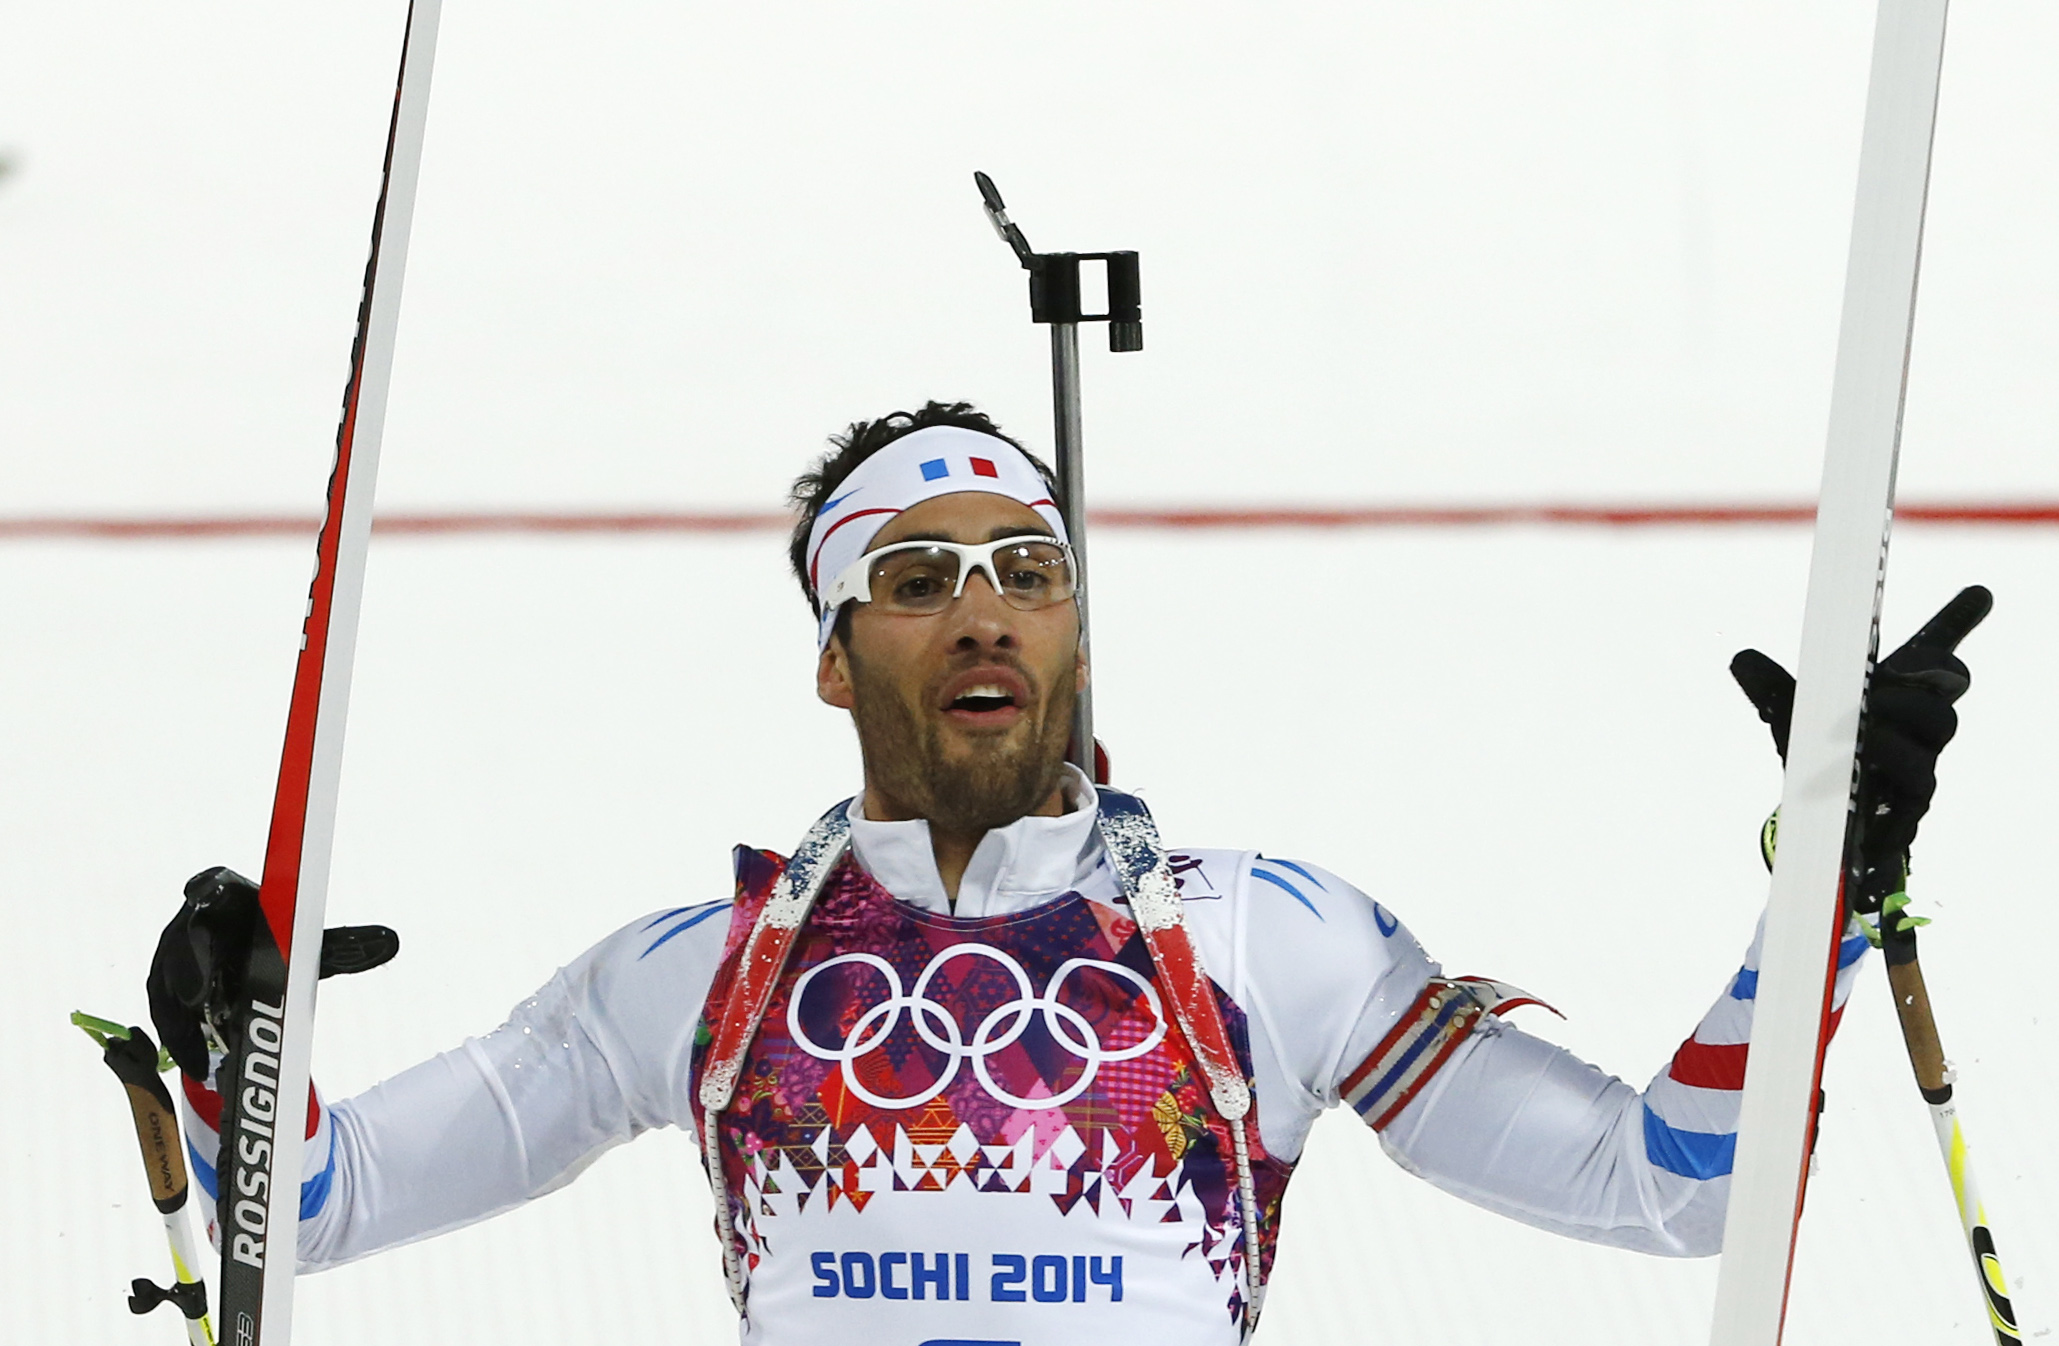 France's Martin Fourcade celebrates winning the gold during the men's biathlon 12.5k pursuit, at the 2014 Winter Olympics, Monday, Feb. 10, 2014, in Krasnaya Polyana, Russia. (AP Photo/Felipe Dana)